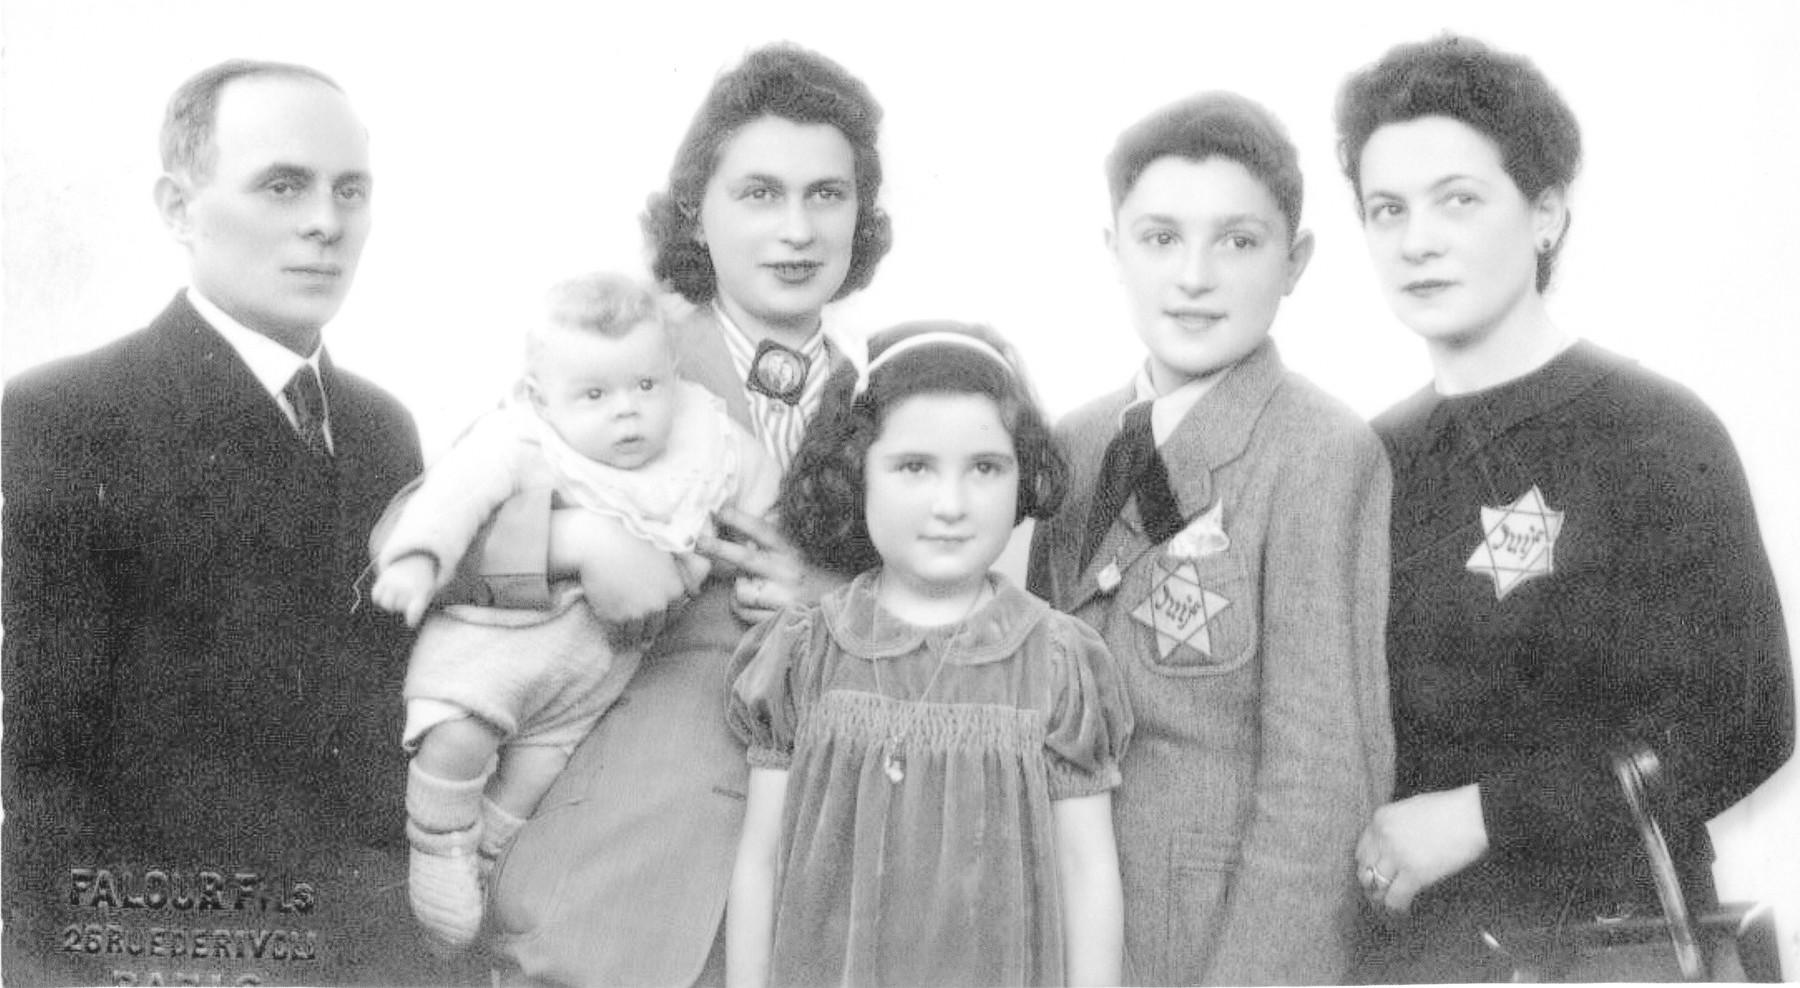 Portrait of a French Jewish family wearing Jewish stars.  From left to right are Victor Perelstein, Eva Perelstein Pelcholding her baby Jean-Claude, Giselle Rachlin, George Rachlin, and Cecile Perelstein Rachlin. (Cecile's husband died on the Maginot line during the invasion of France.)